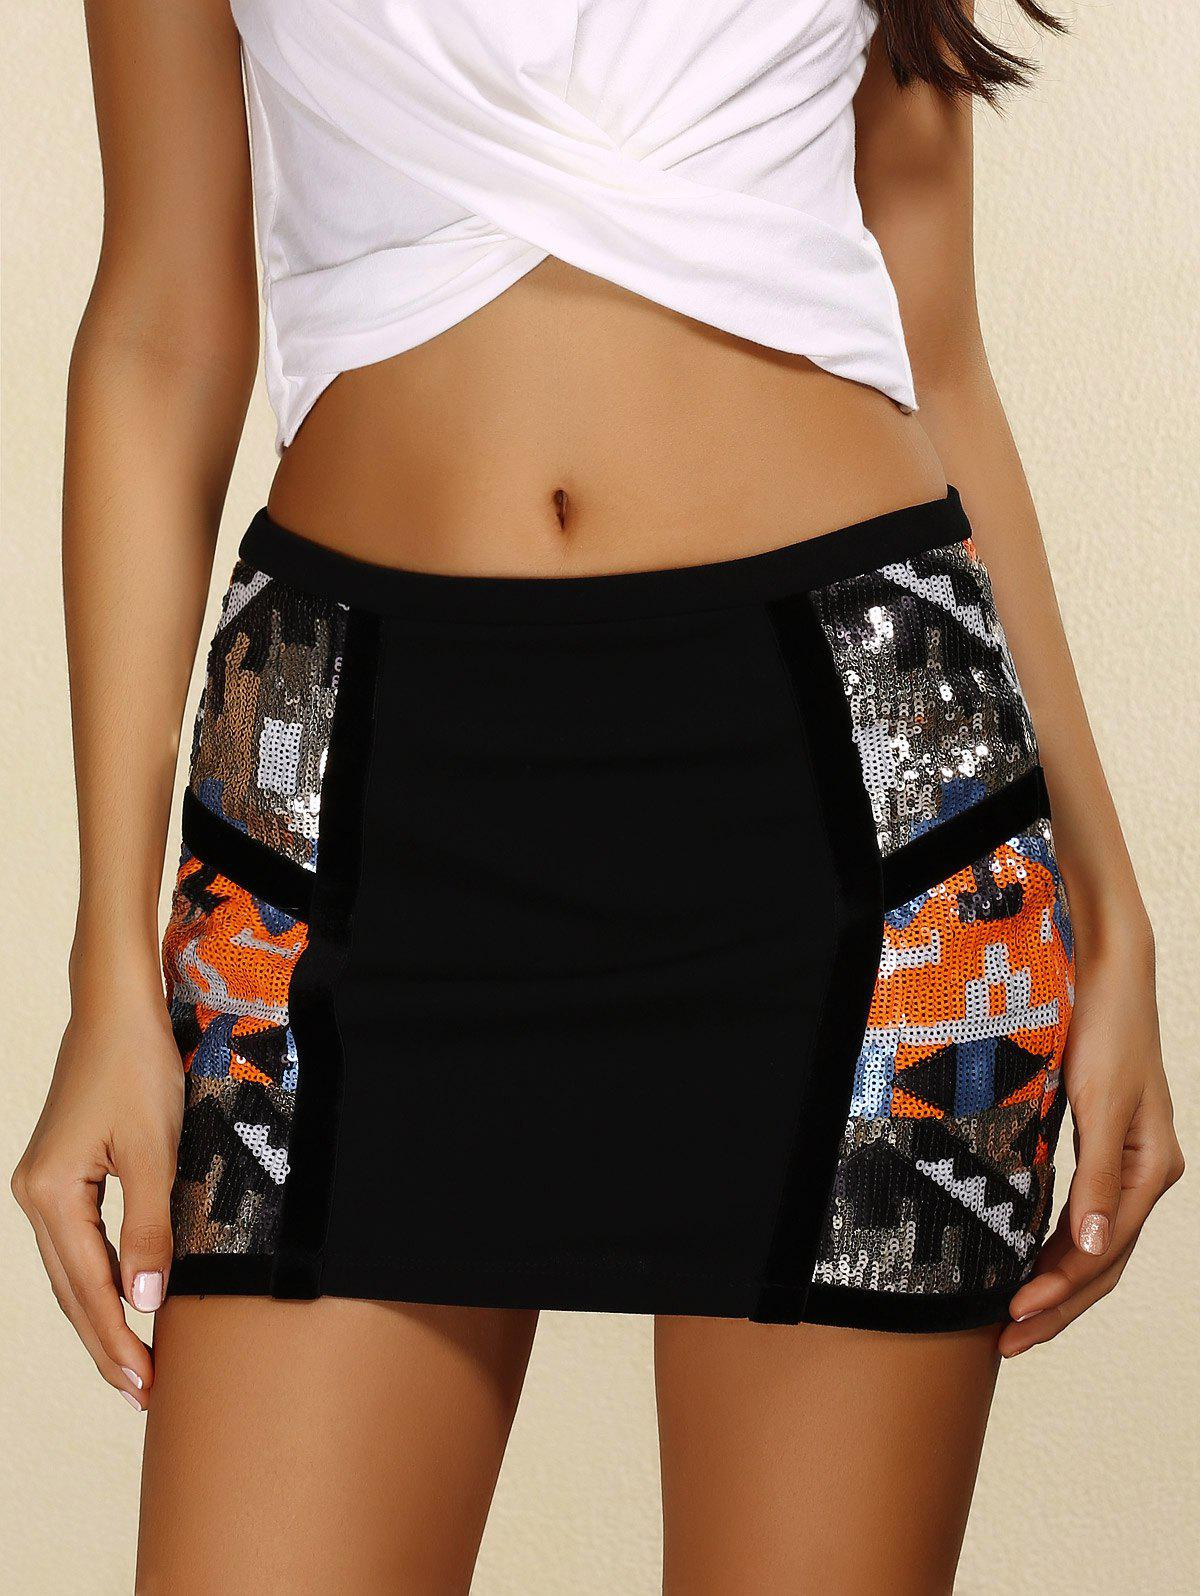 Chic Sequins Tight Mini Skirt